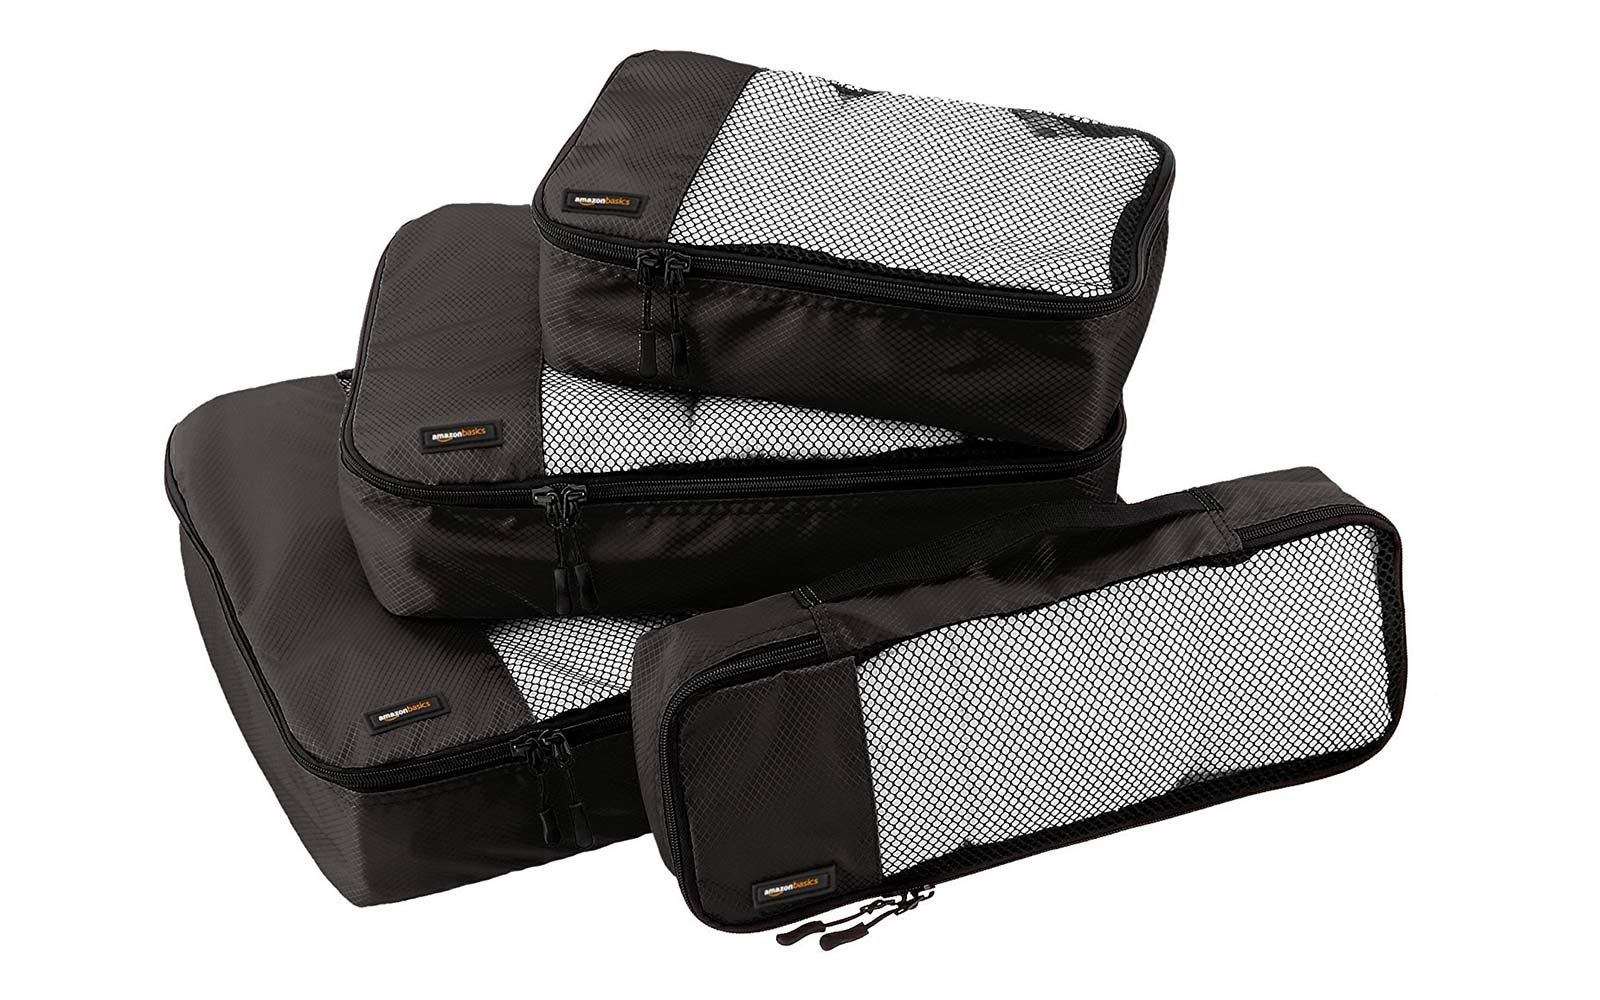 ea2eeb805535 The Best Packing Cubes for Travel | Travel + Leisure